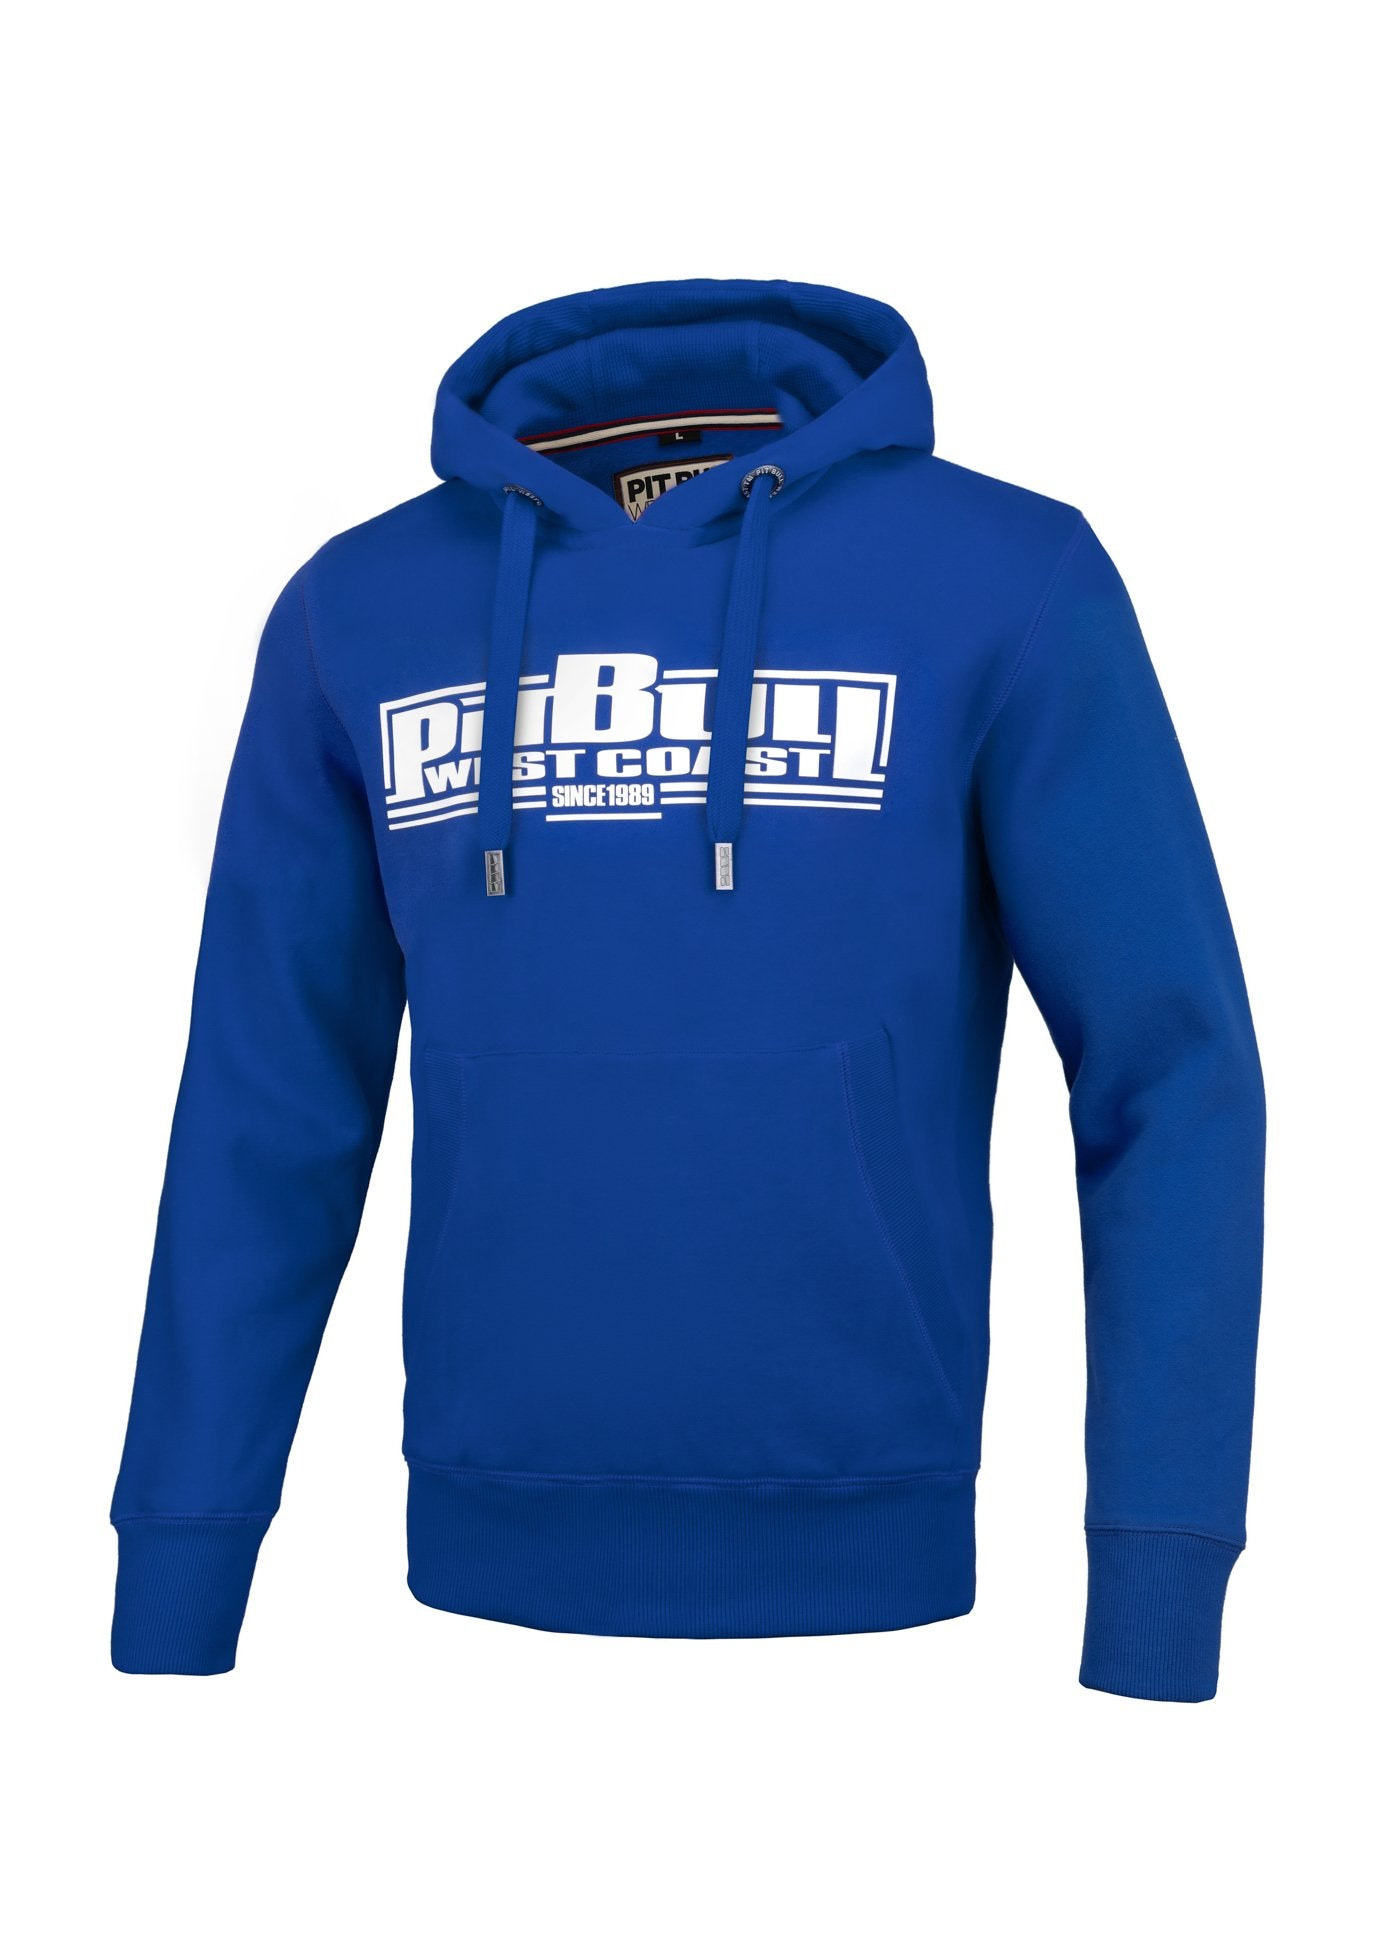 CLASSIC BOXING 19 HOODIE ROYAL BLUE - pitbullwestcoast